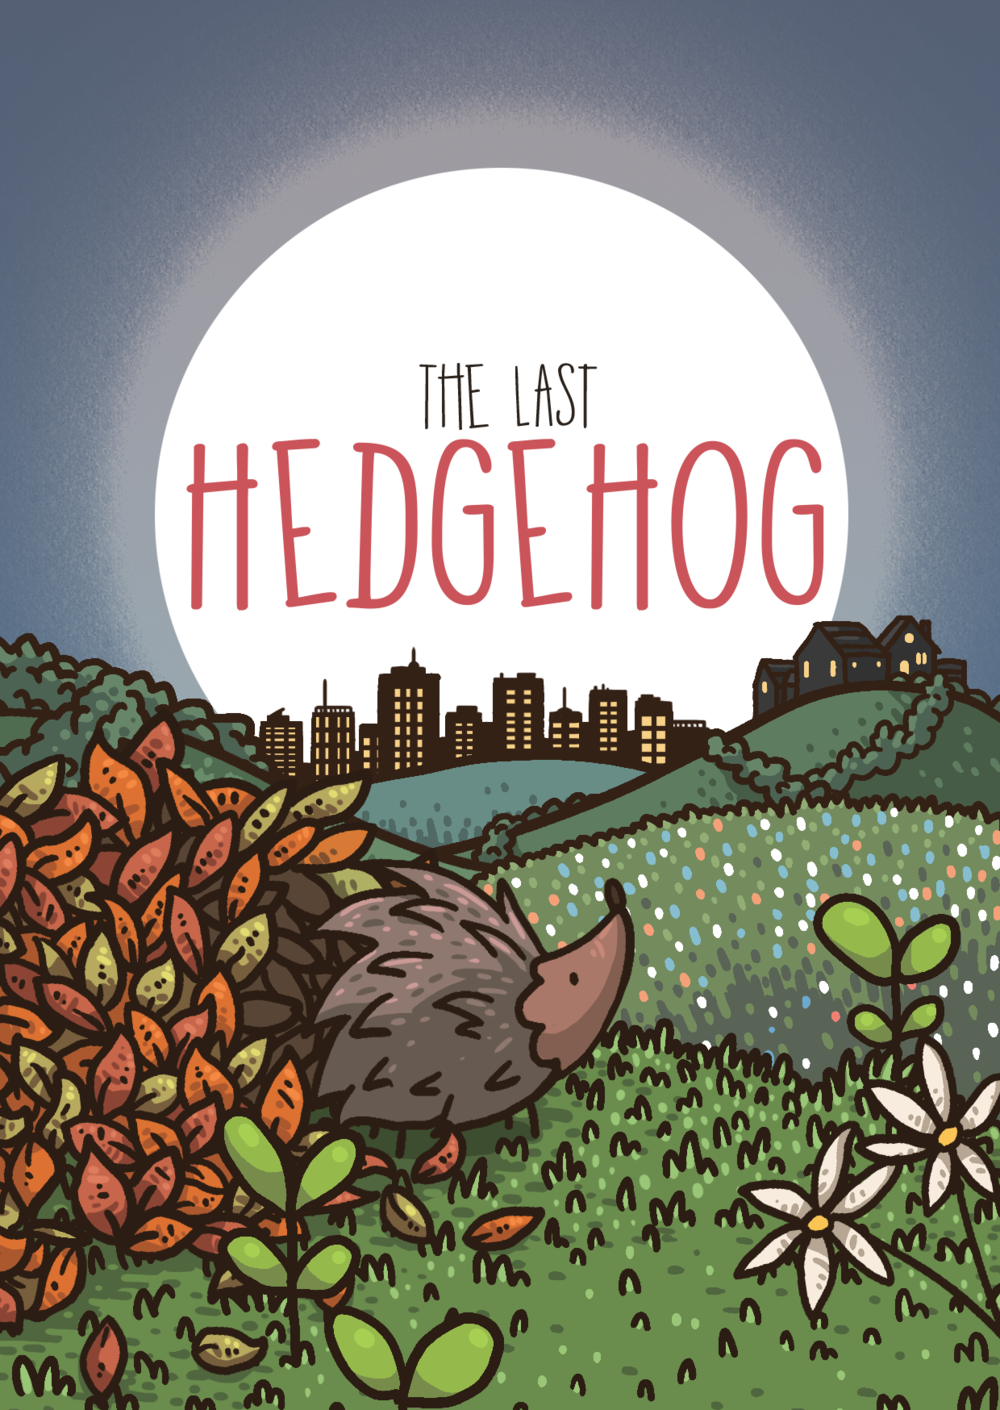 HedgehogLondon1.png